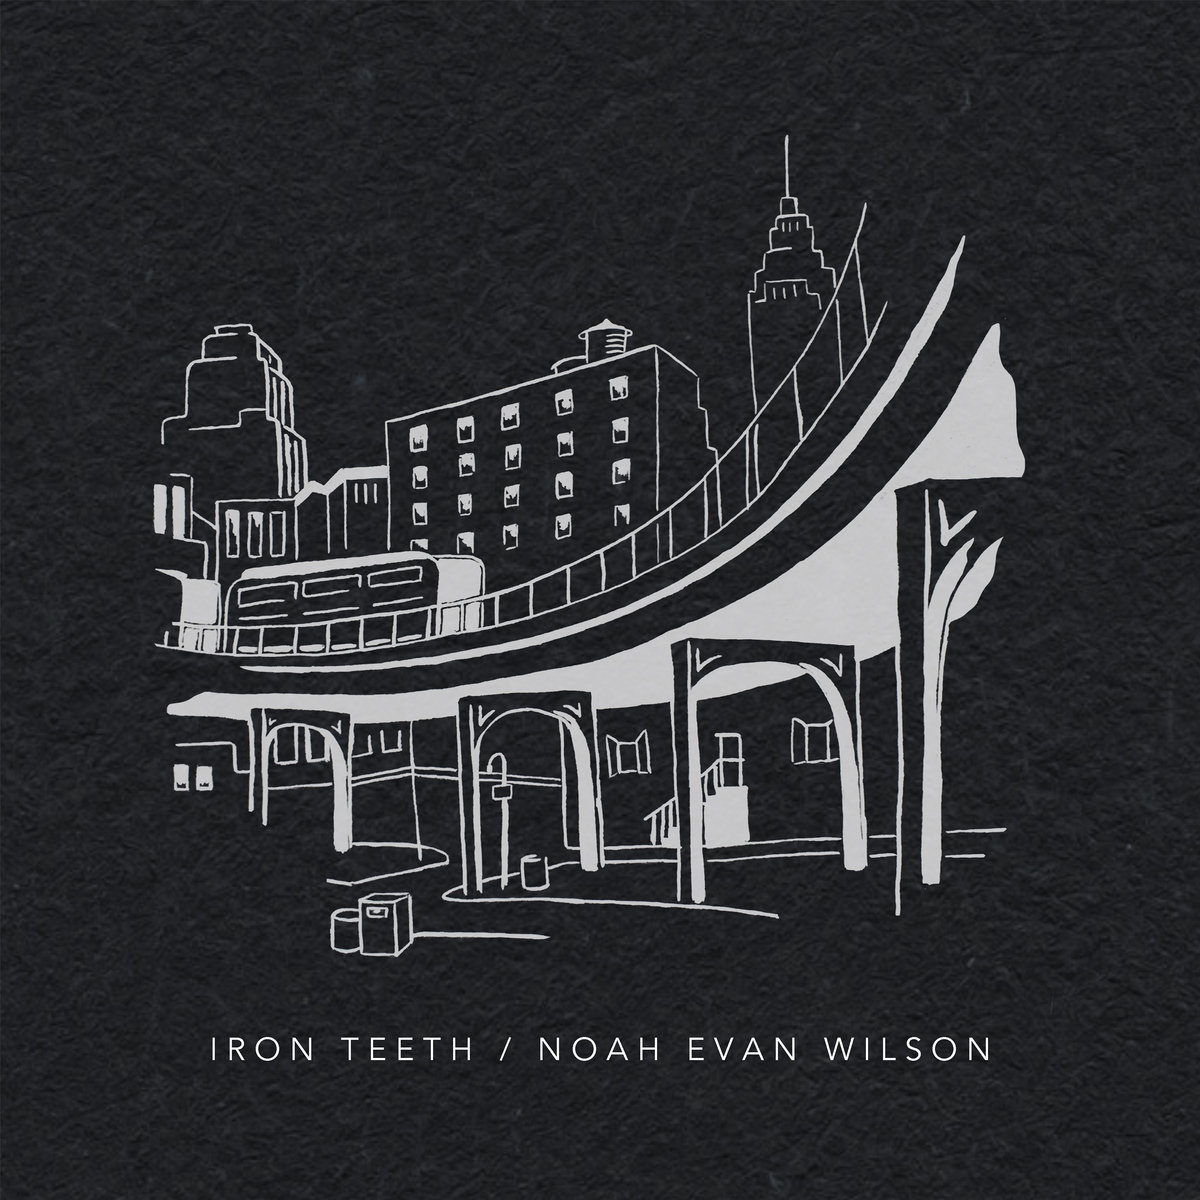 Iron Teeth by Noah Evan Wilson